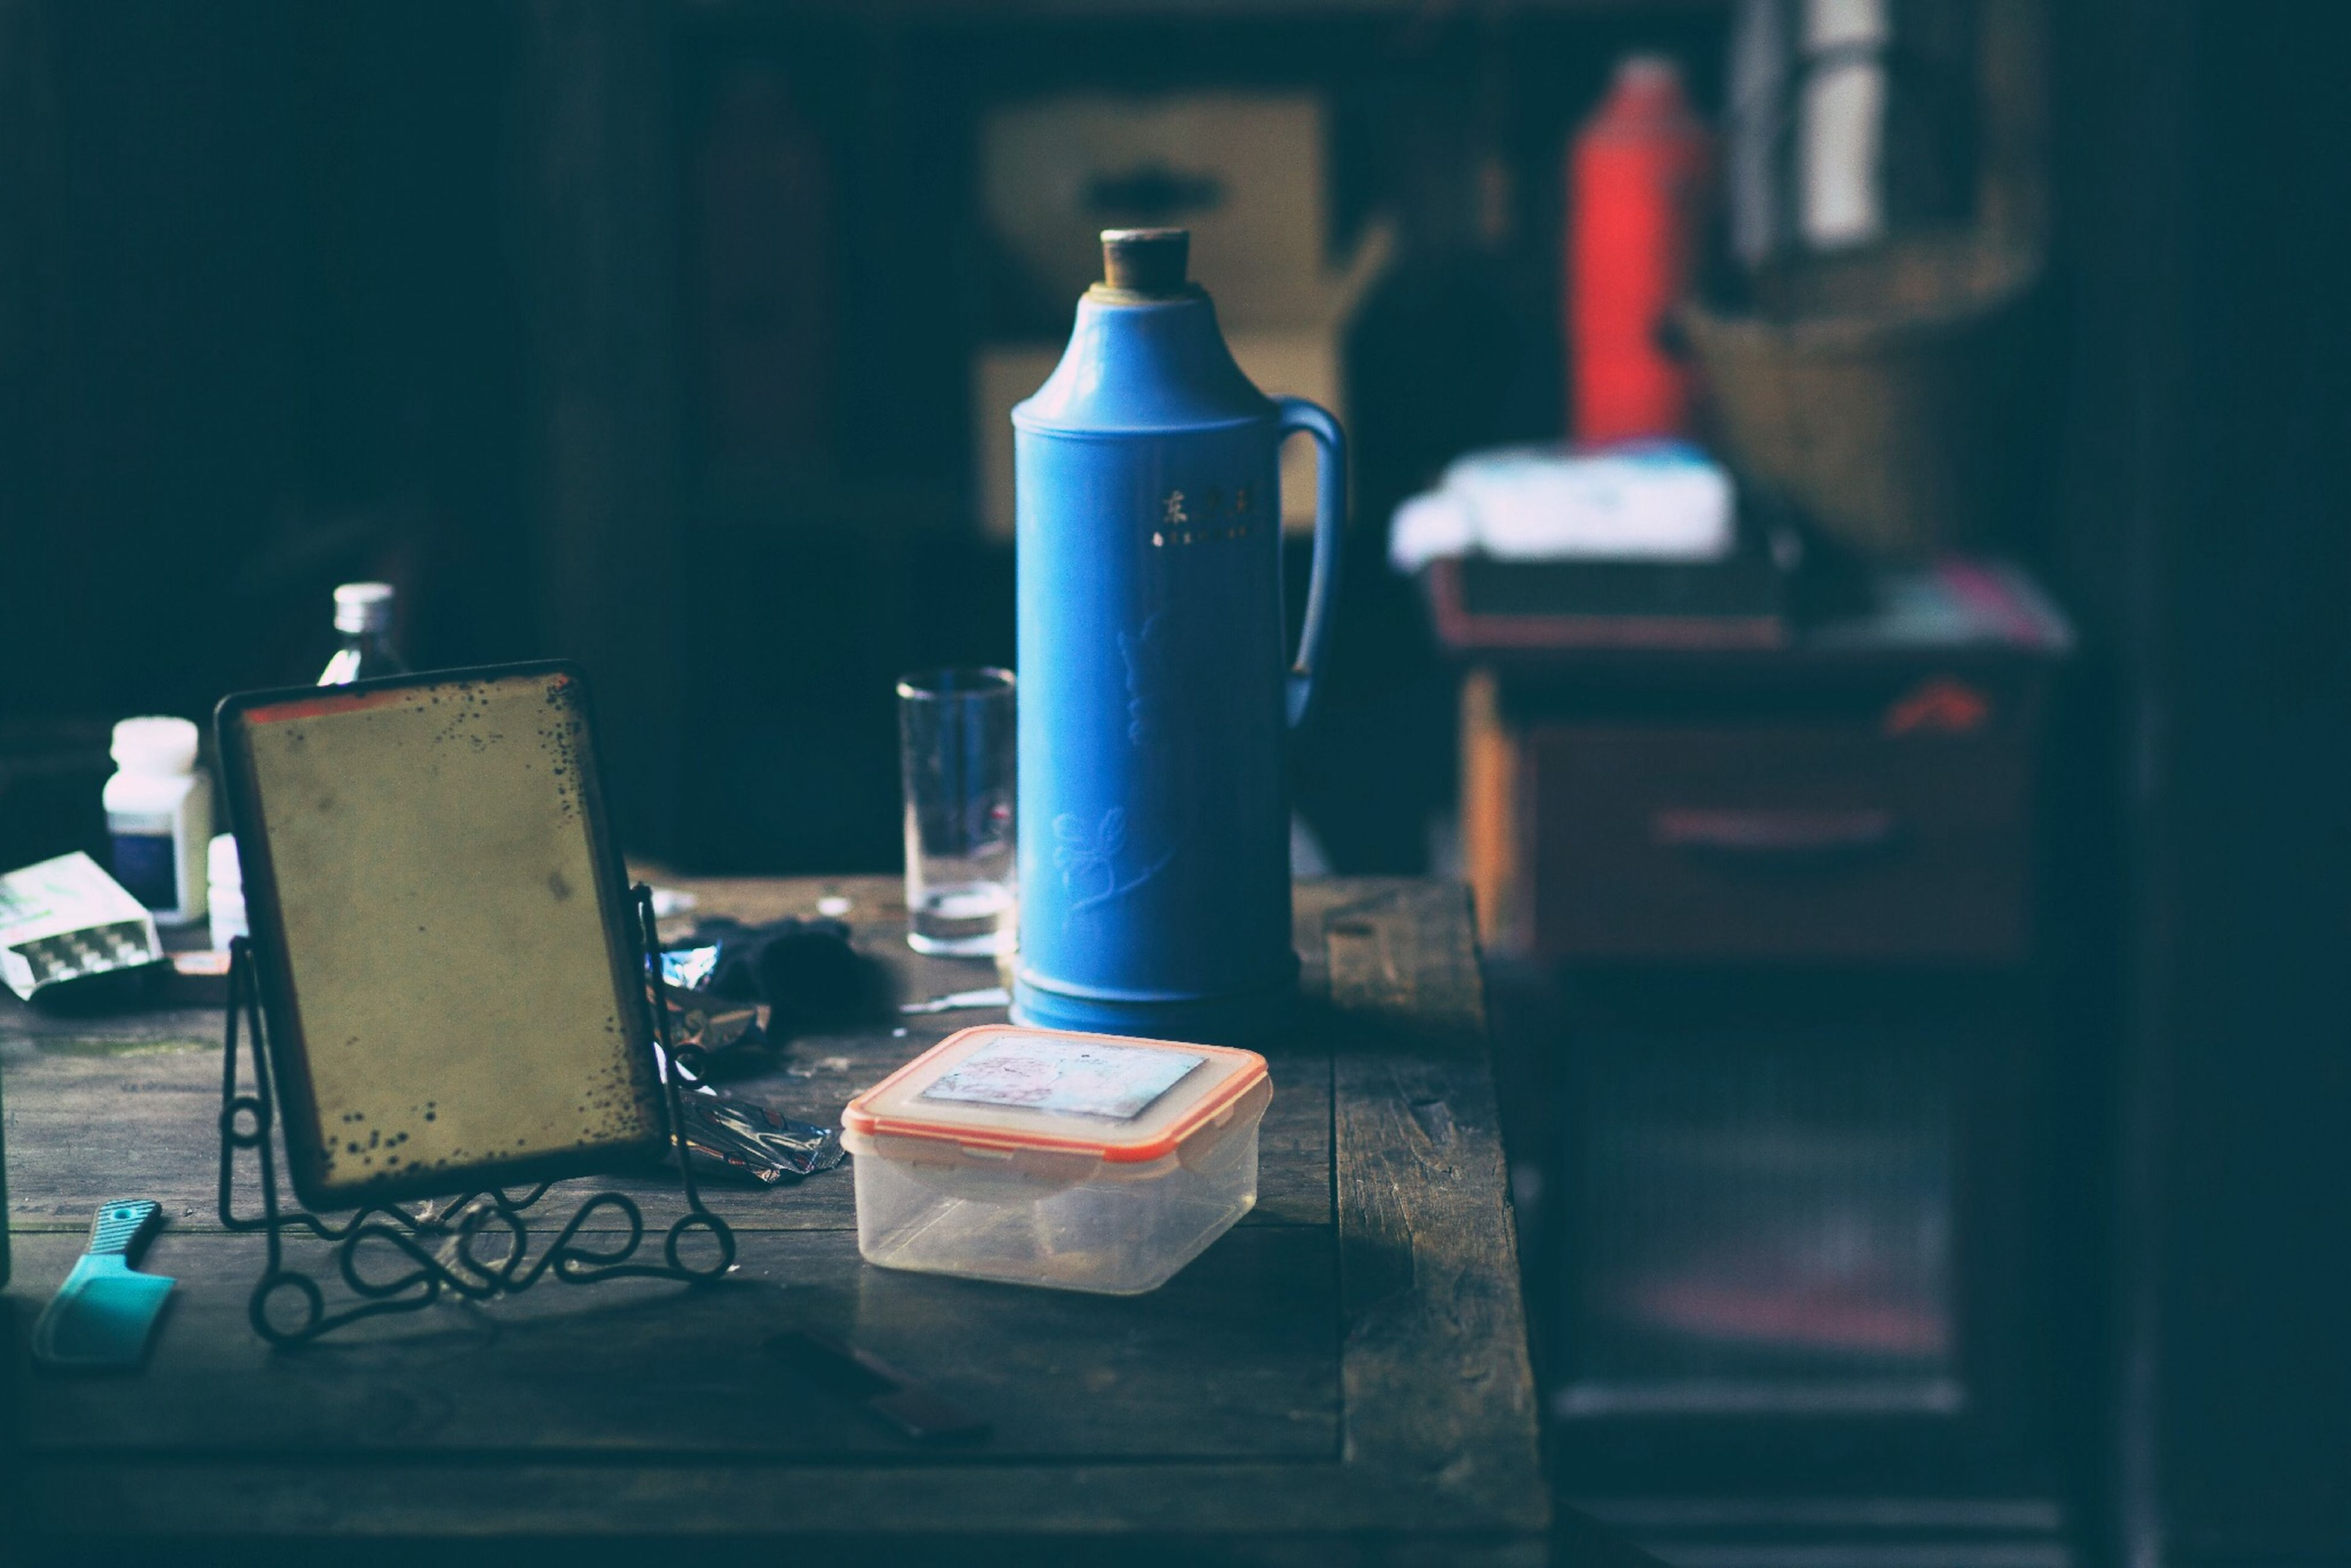 indoors, metal, still life, close-up, equipment, old, no people, old-fashioned, wall - building feature, focus on foreground, man made object, table, selective focus, metallic, wood - material, technology, bottle, machinery, blue, electricity